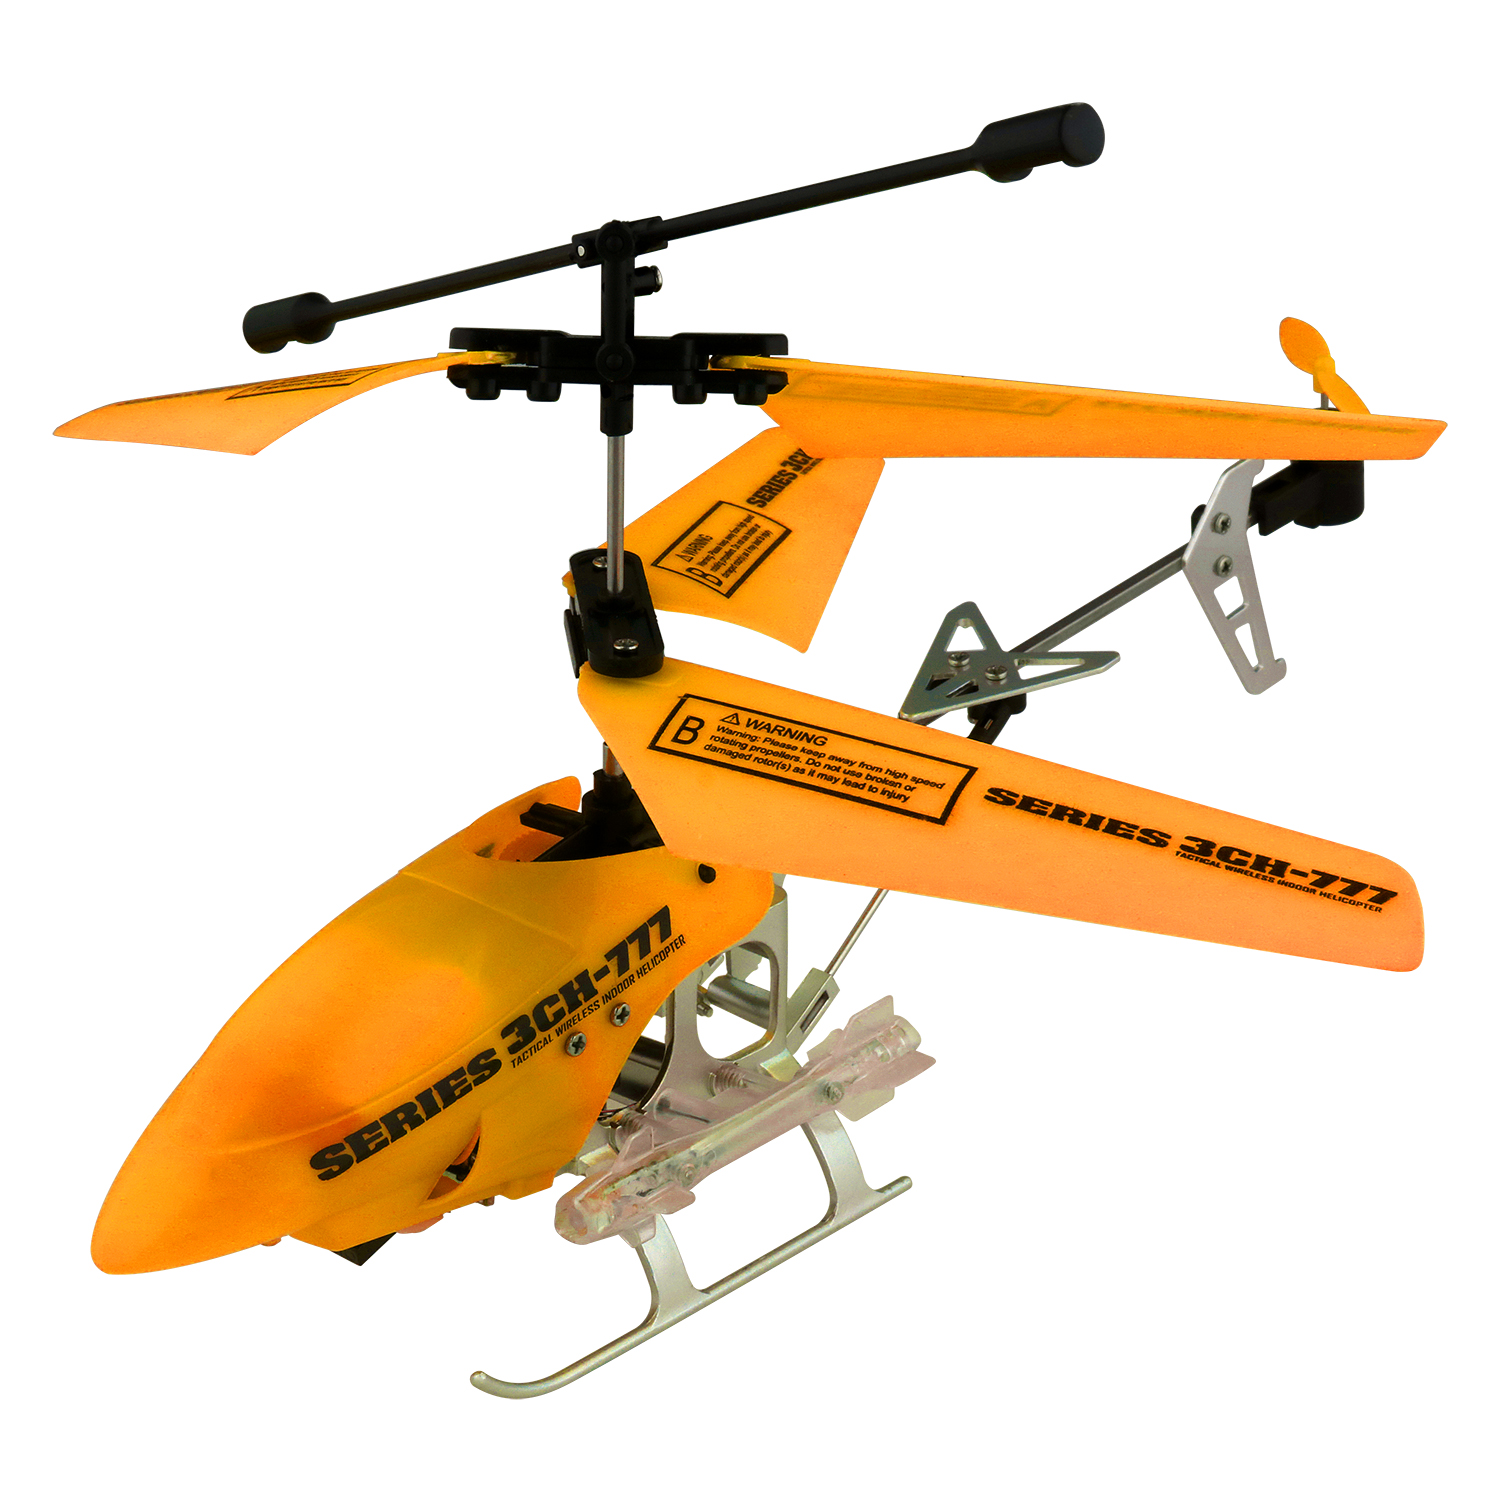 Series 3CH-777 7.5-Inch Tactical Wireless Indoor RC Gyro Helicopter, Neon Orange